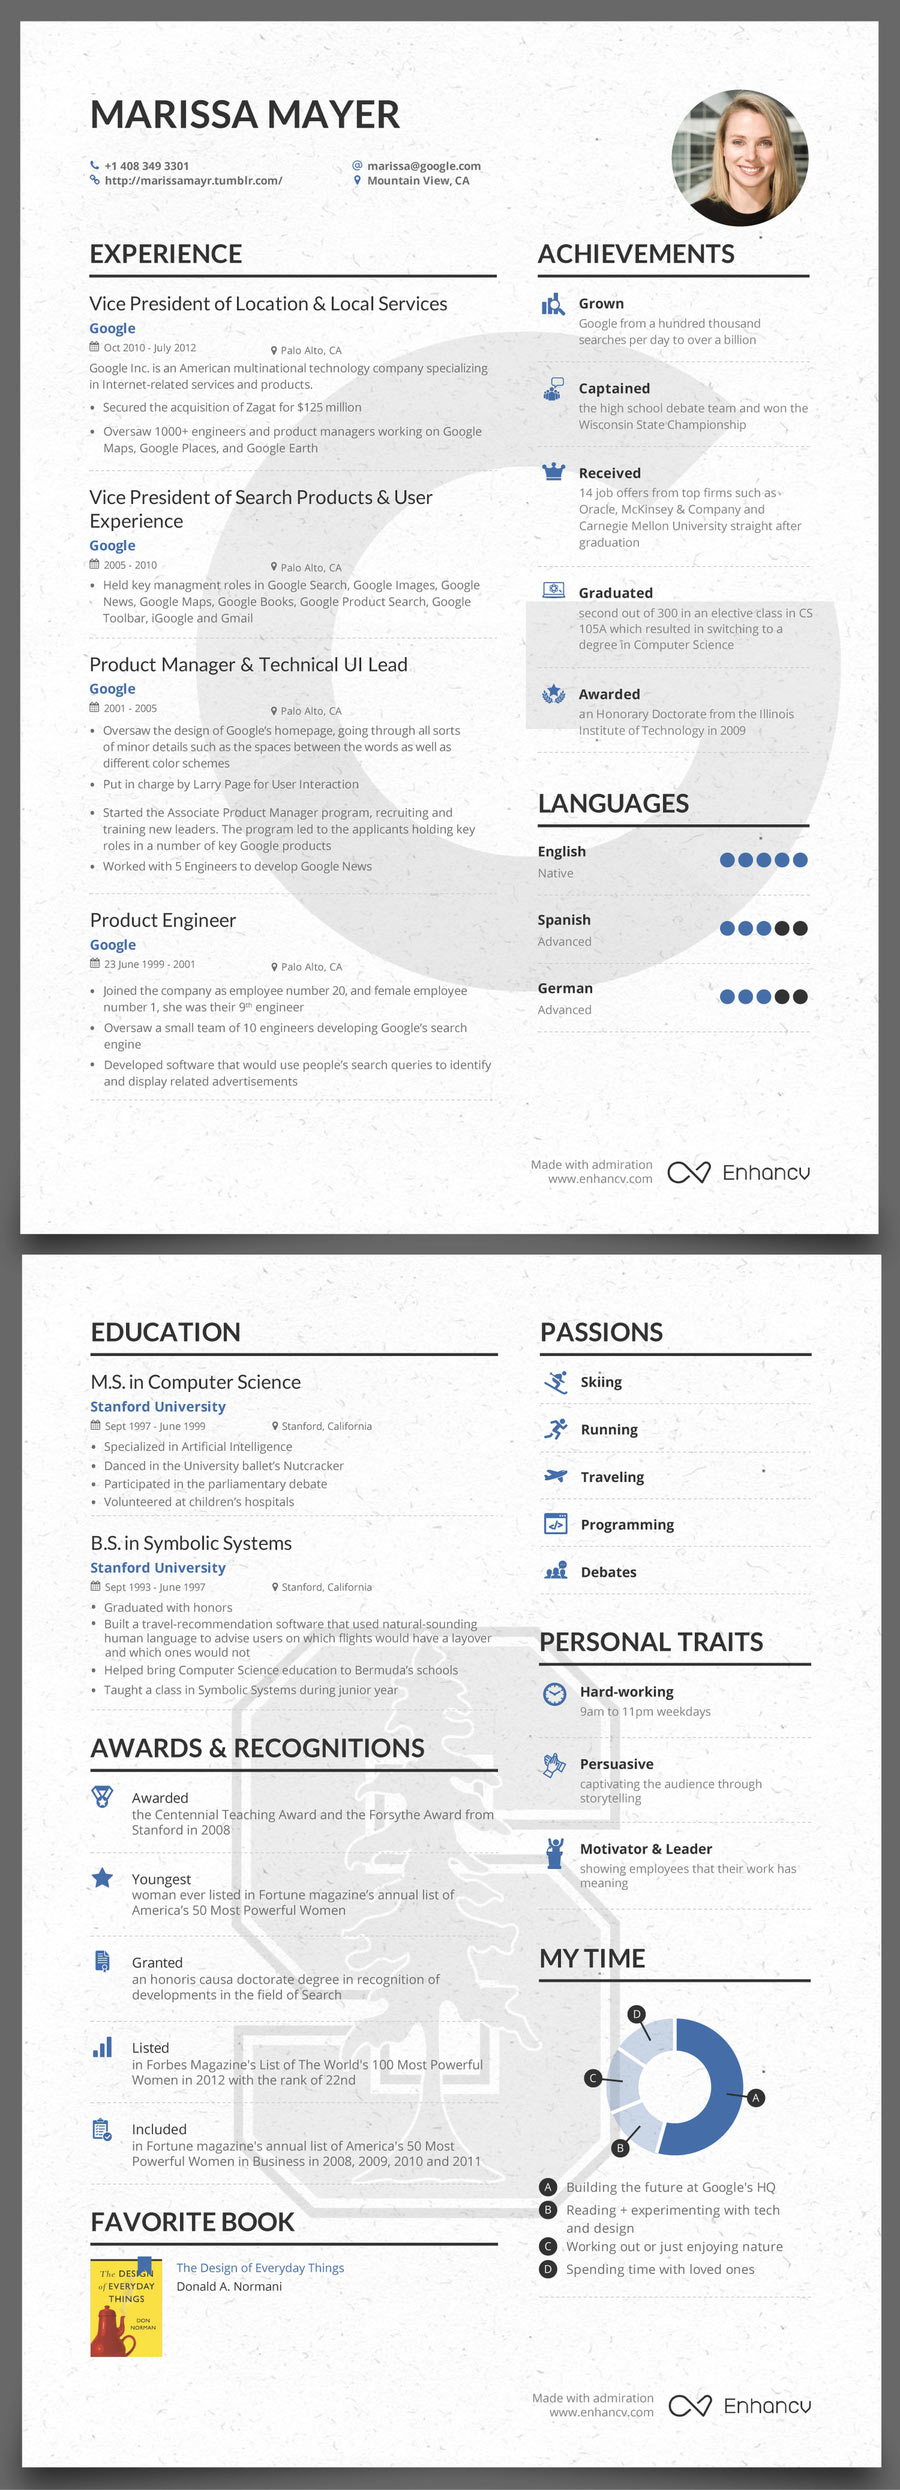 the success journey marissa er s pre yahoo resume marissa er s pre yahoo resume